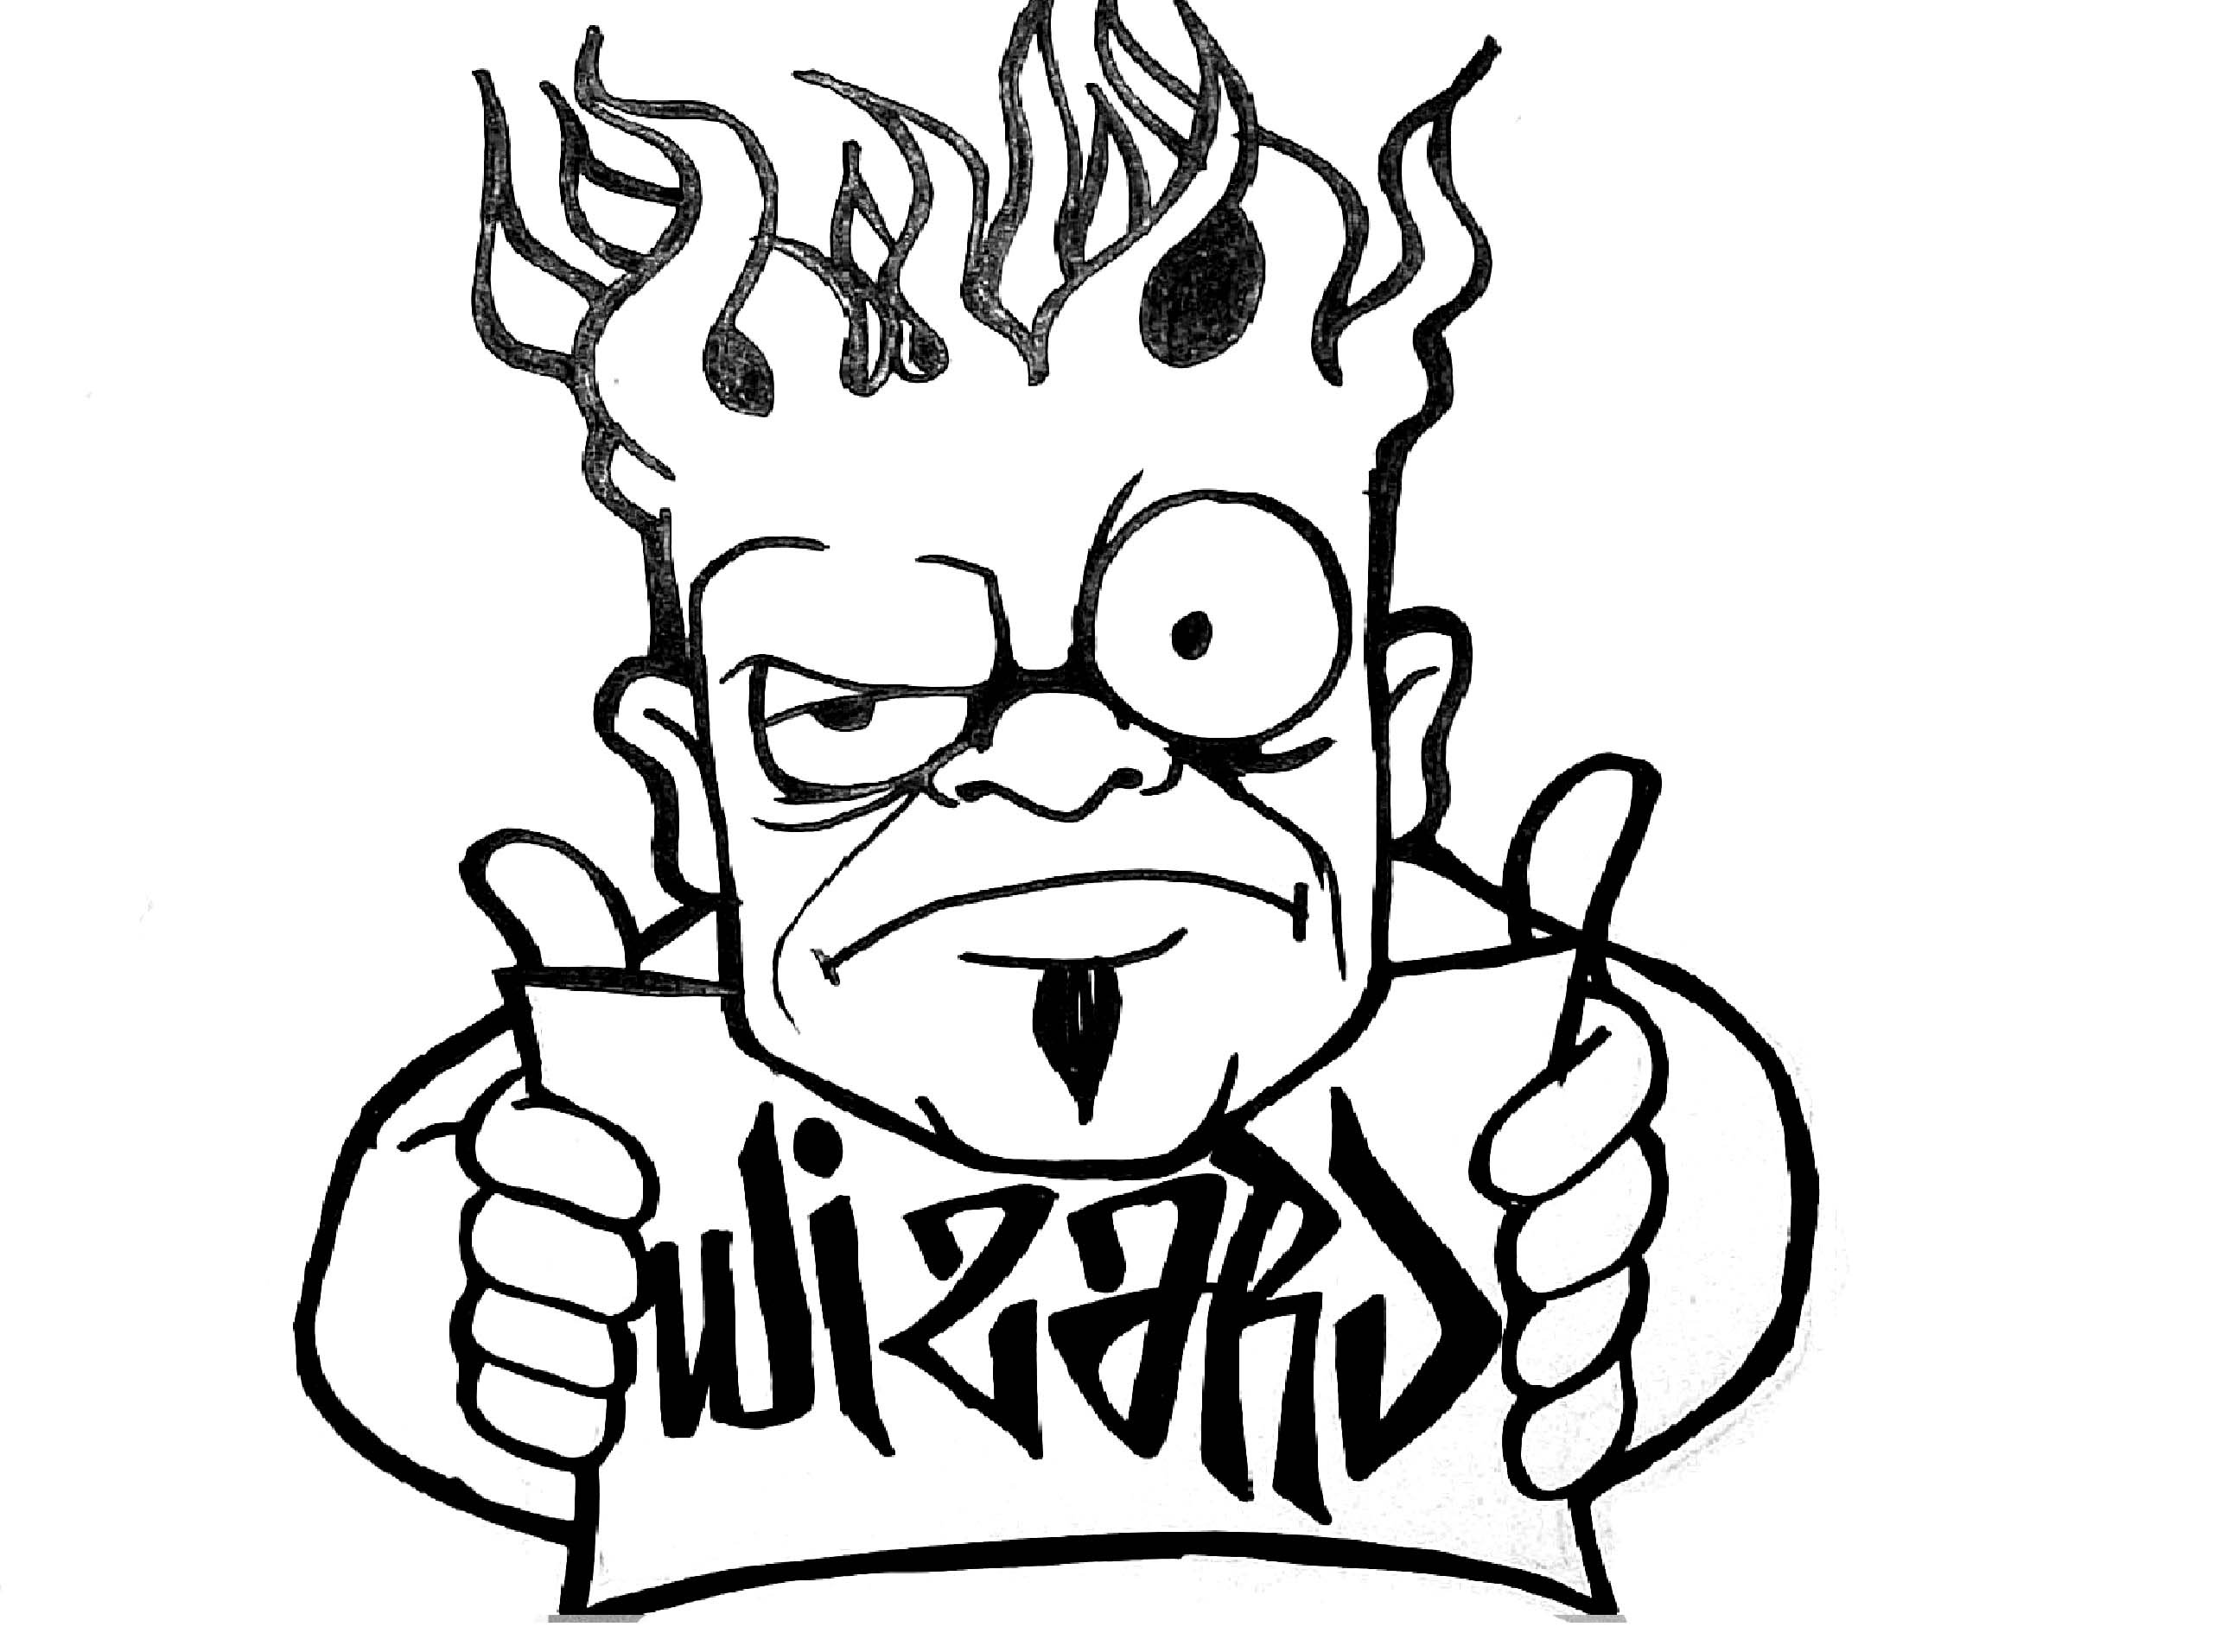 2592x1912 Lets Draw A Burningi Character Cool For Sticker